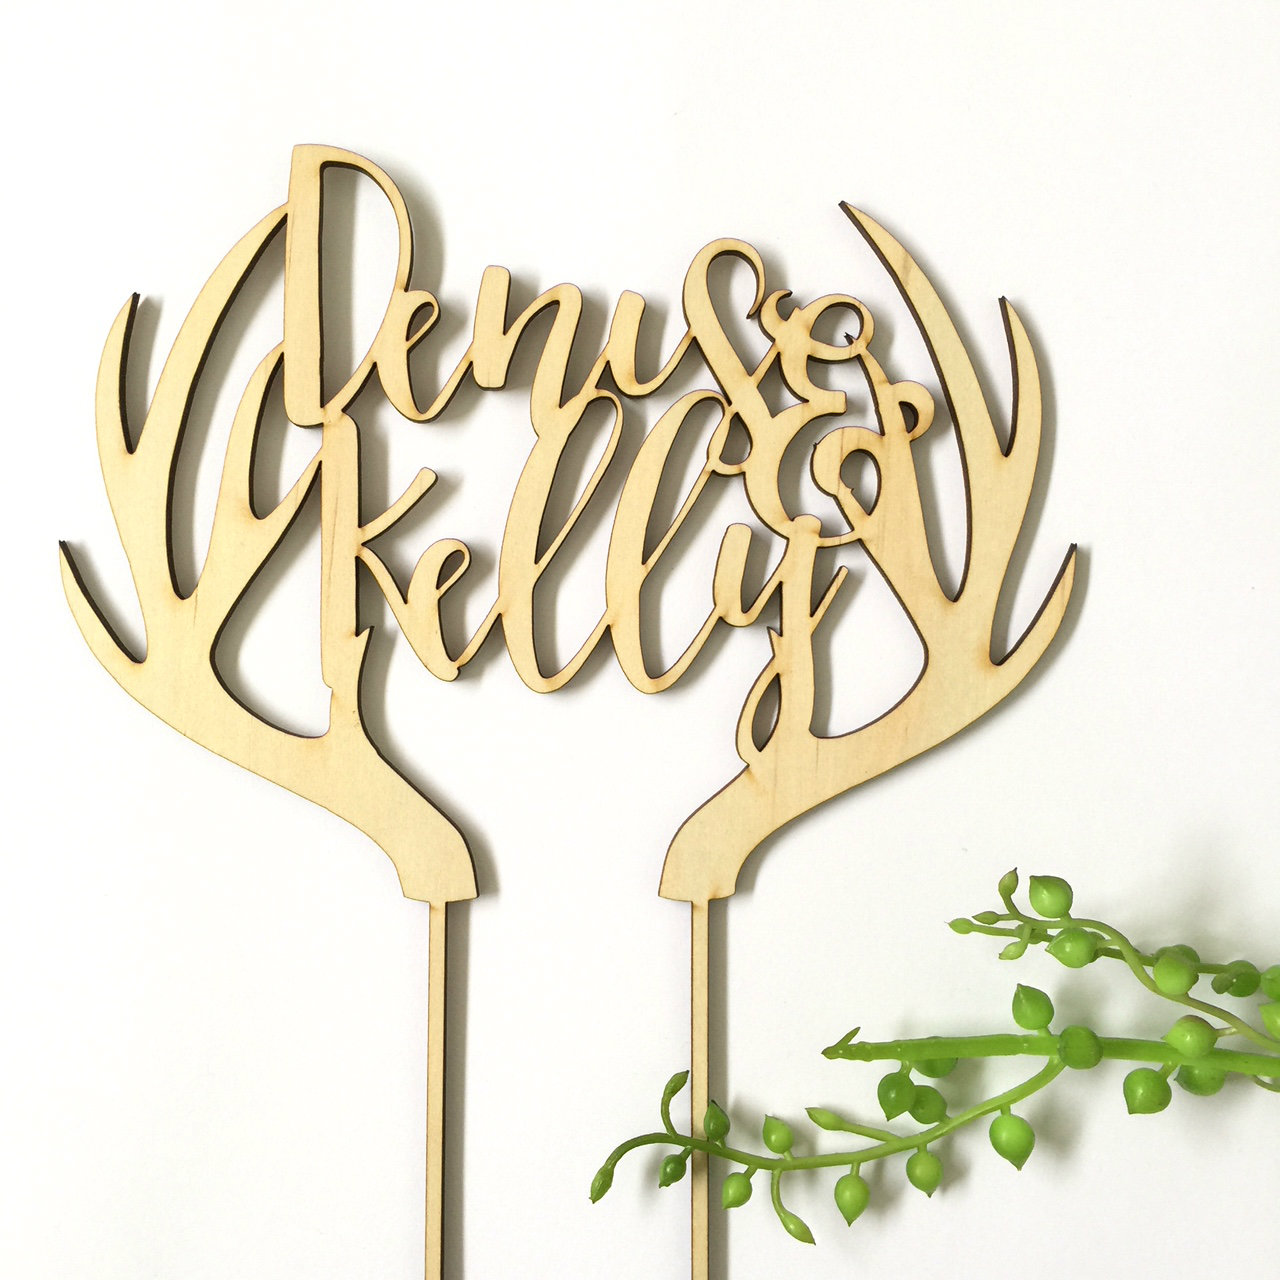 Couples wedding name with deer antlers - Custom name - birthday  - Personalised Name Wood cake topper birthday decoration